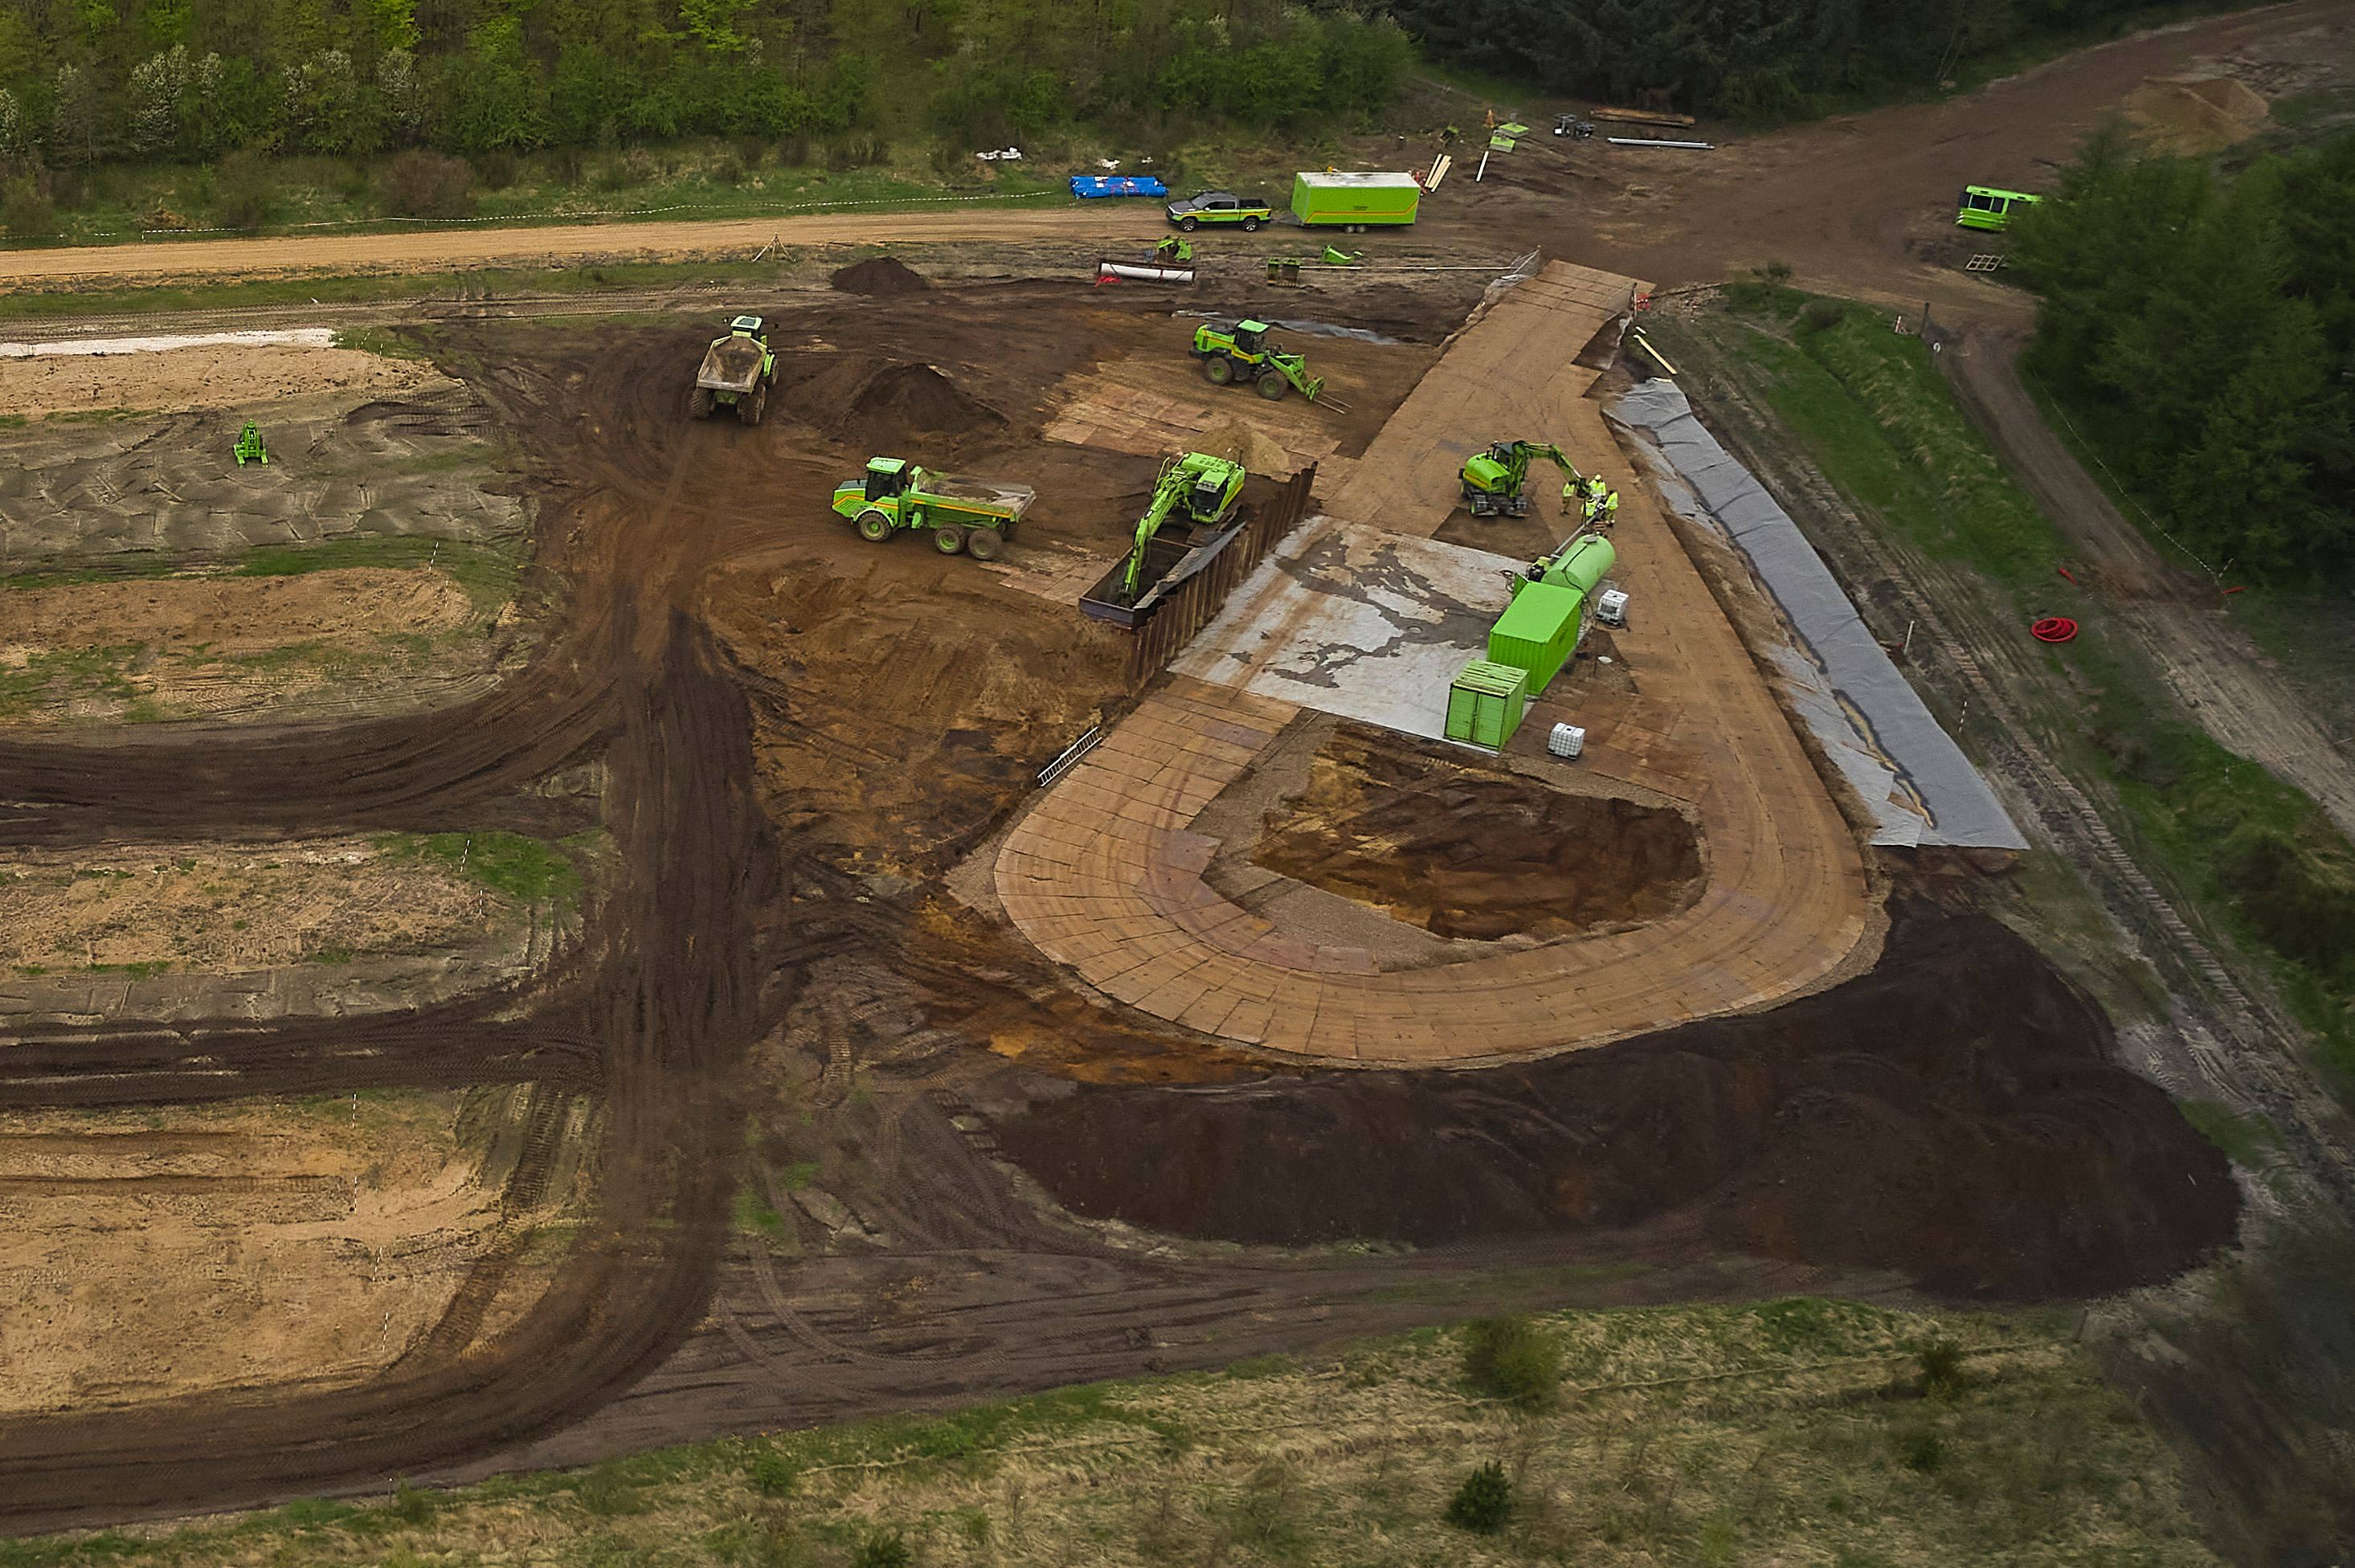 Buried mink are excavated during a trial excavation at a military area close to Norre Felding, Holstebro, in Denmark, on May 13.